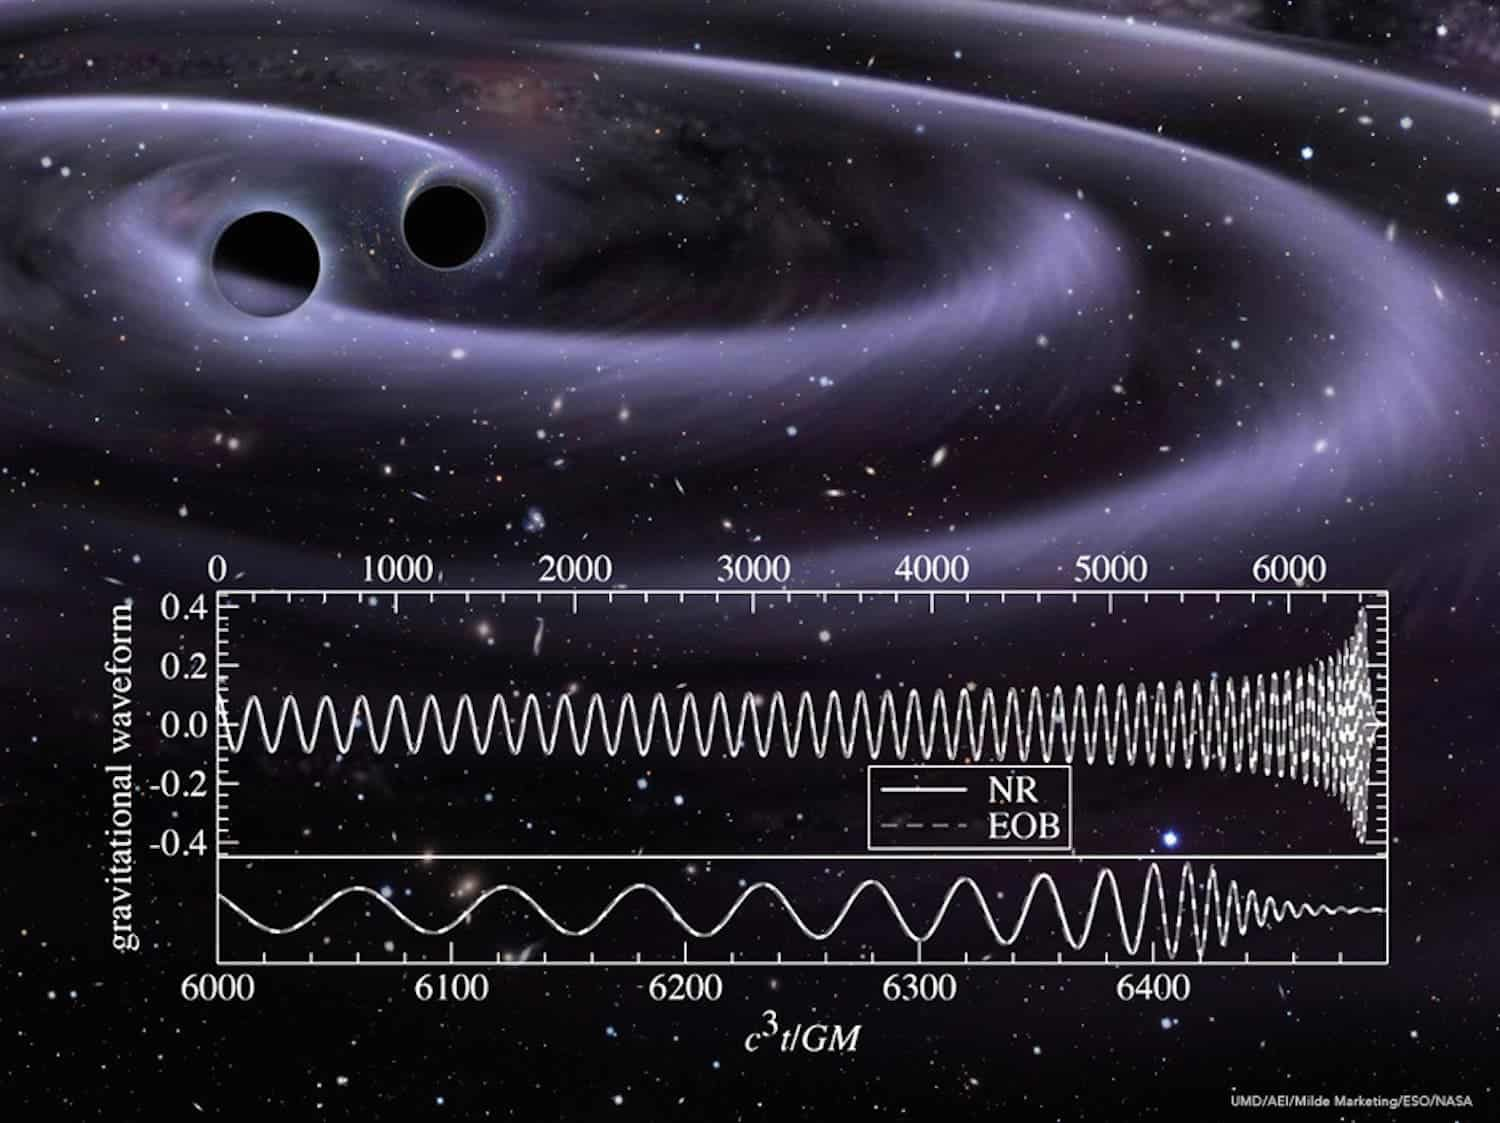 Detection Of Strongest Gravitational Waves From Supermassive Black Holes Within A Decade